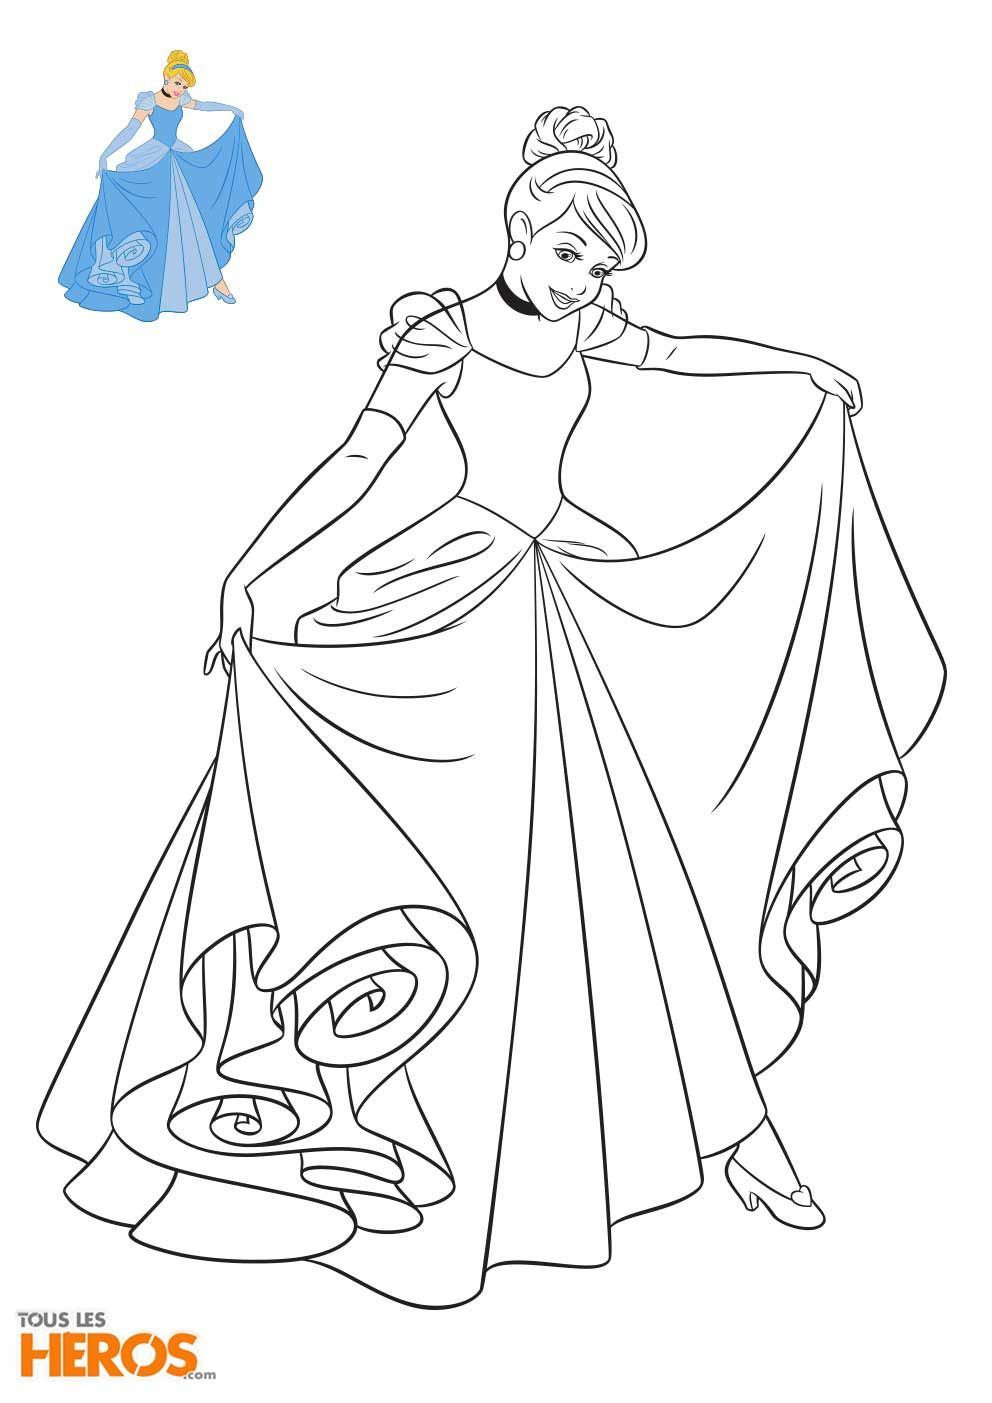 Pin by maly on Carte à broder | Disney princess coloring pages, Princess  coloring pages, Disney princess colors